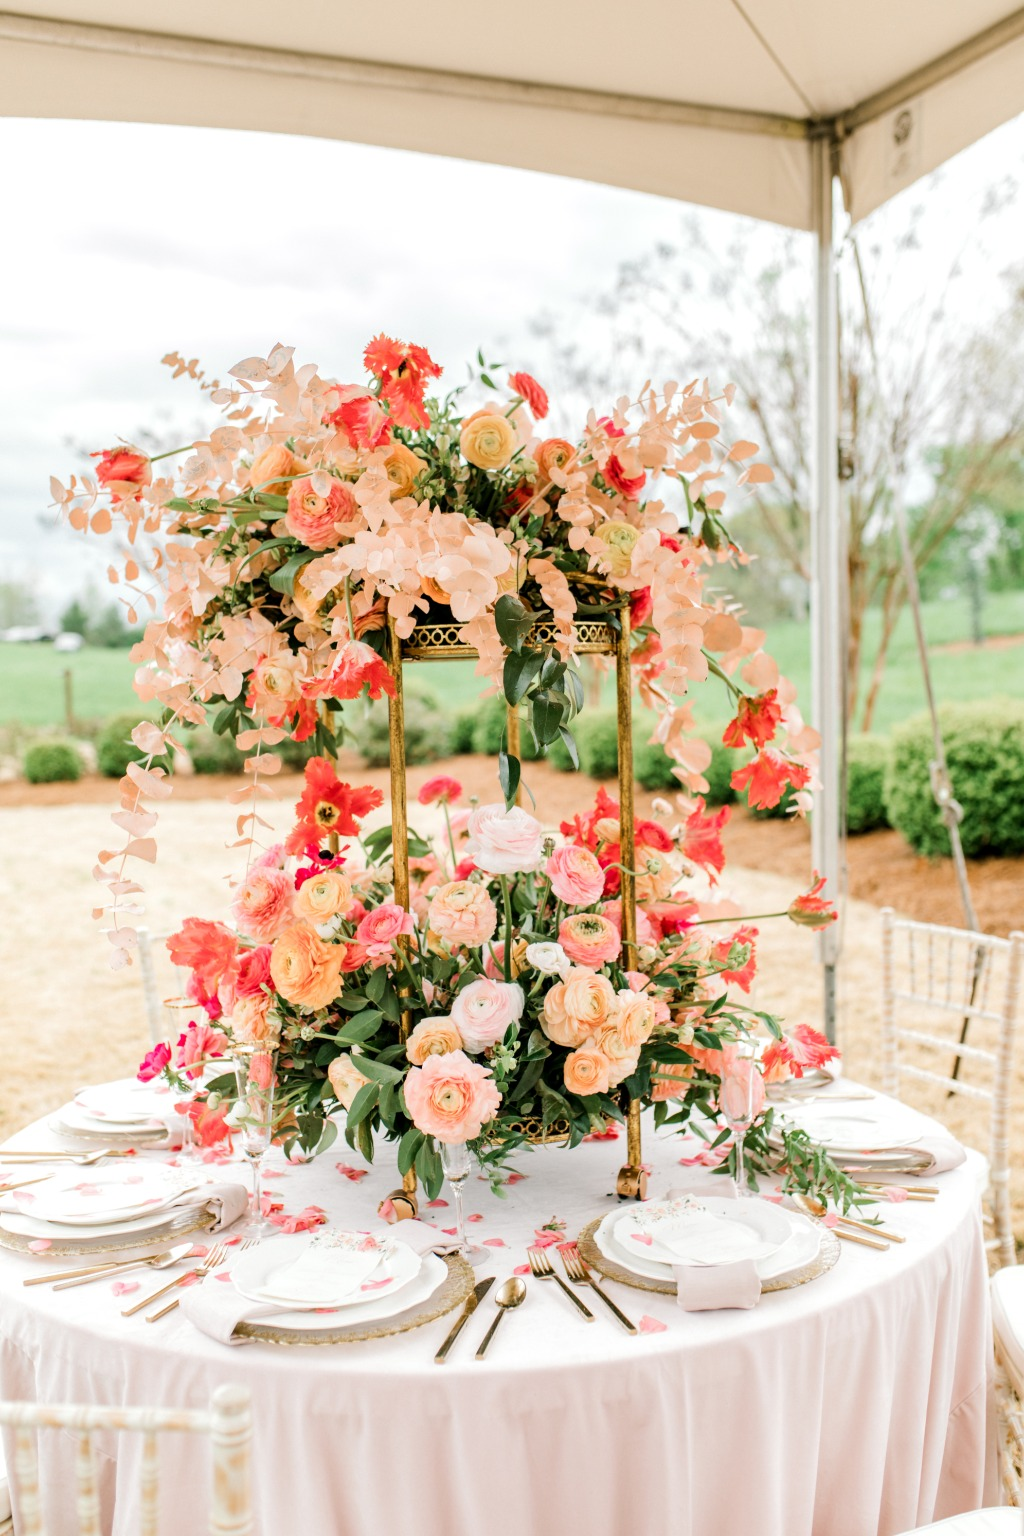 Love seeing Pantone's Color of the Year in this stunning centerpiece!